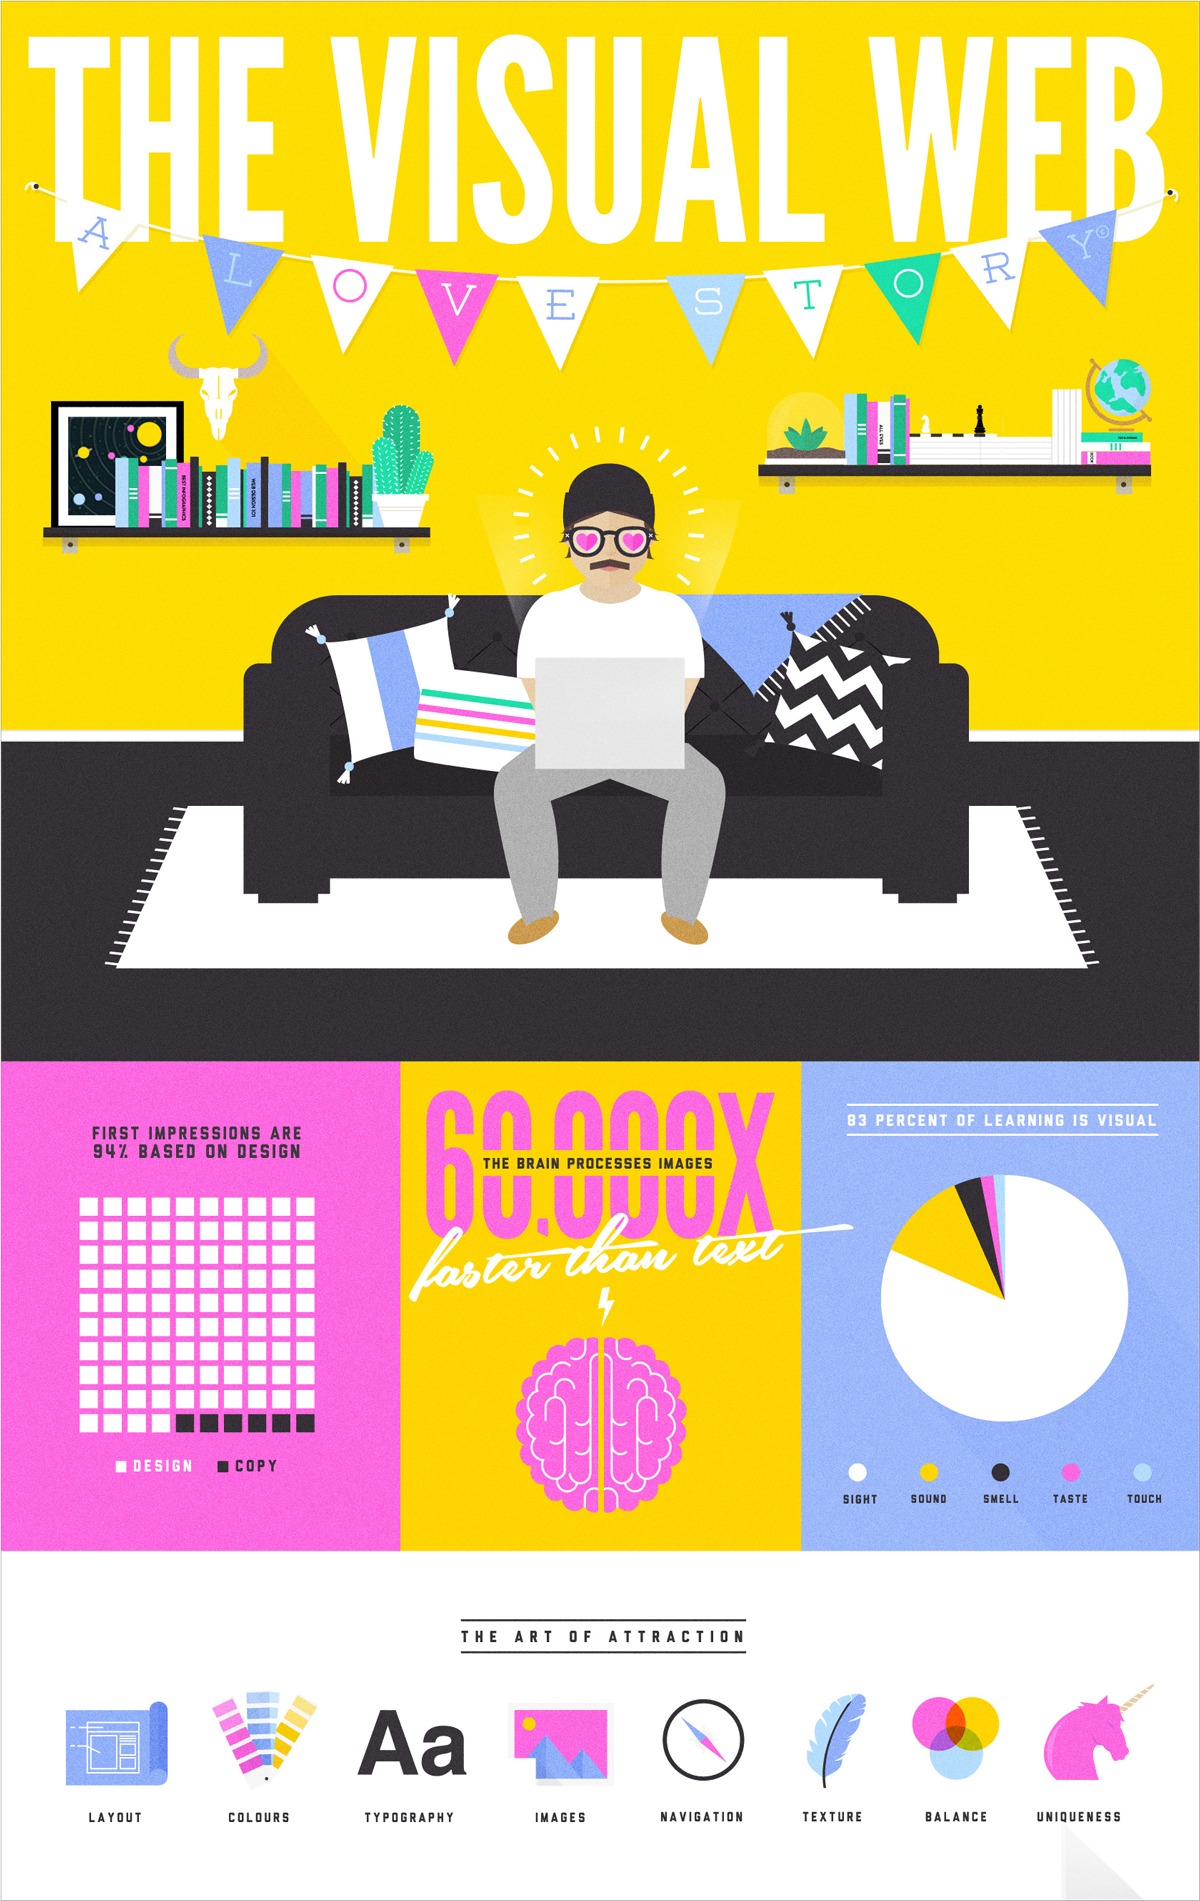 Graphic-Design-Visual_Web_Infographic_Large best infographics best infographic examples